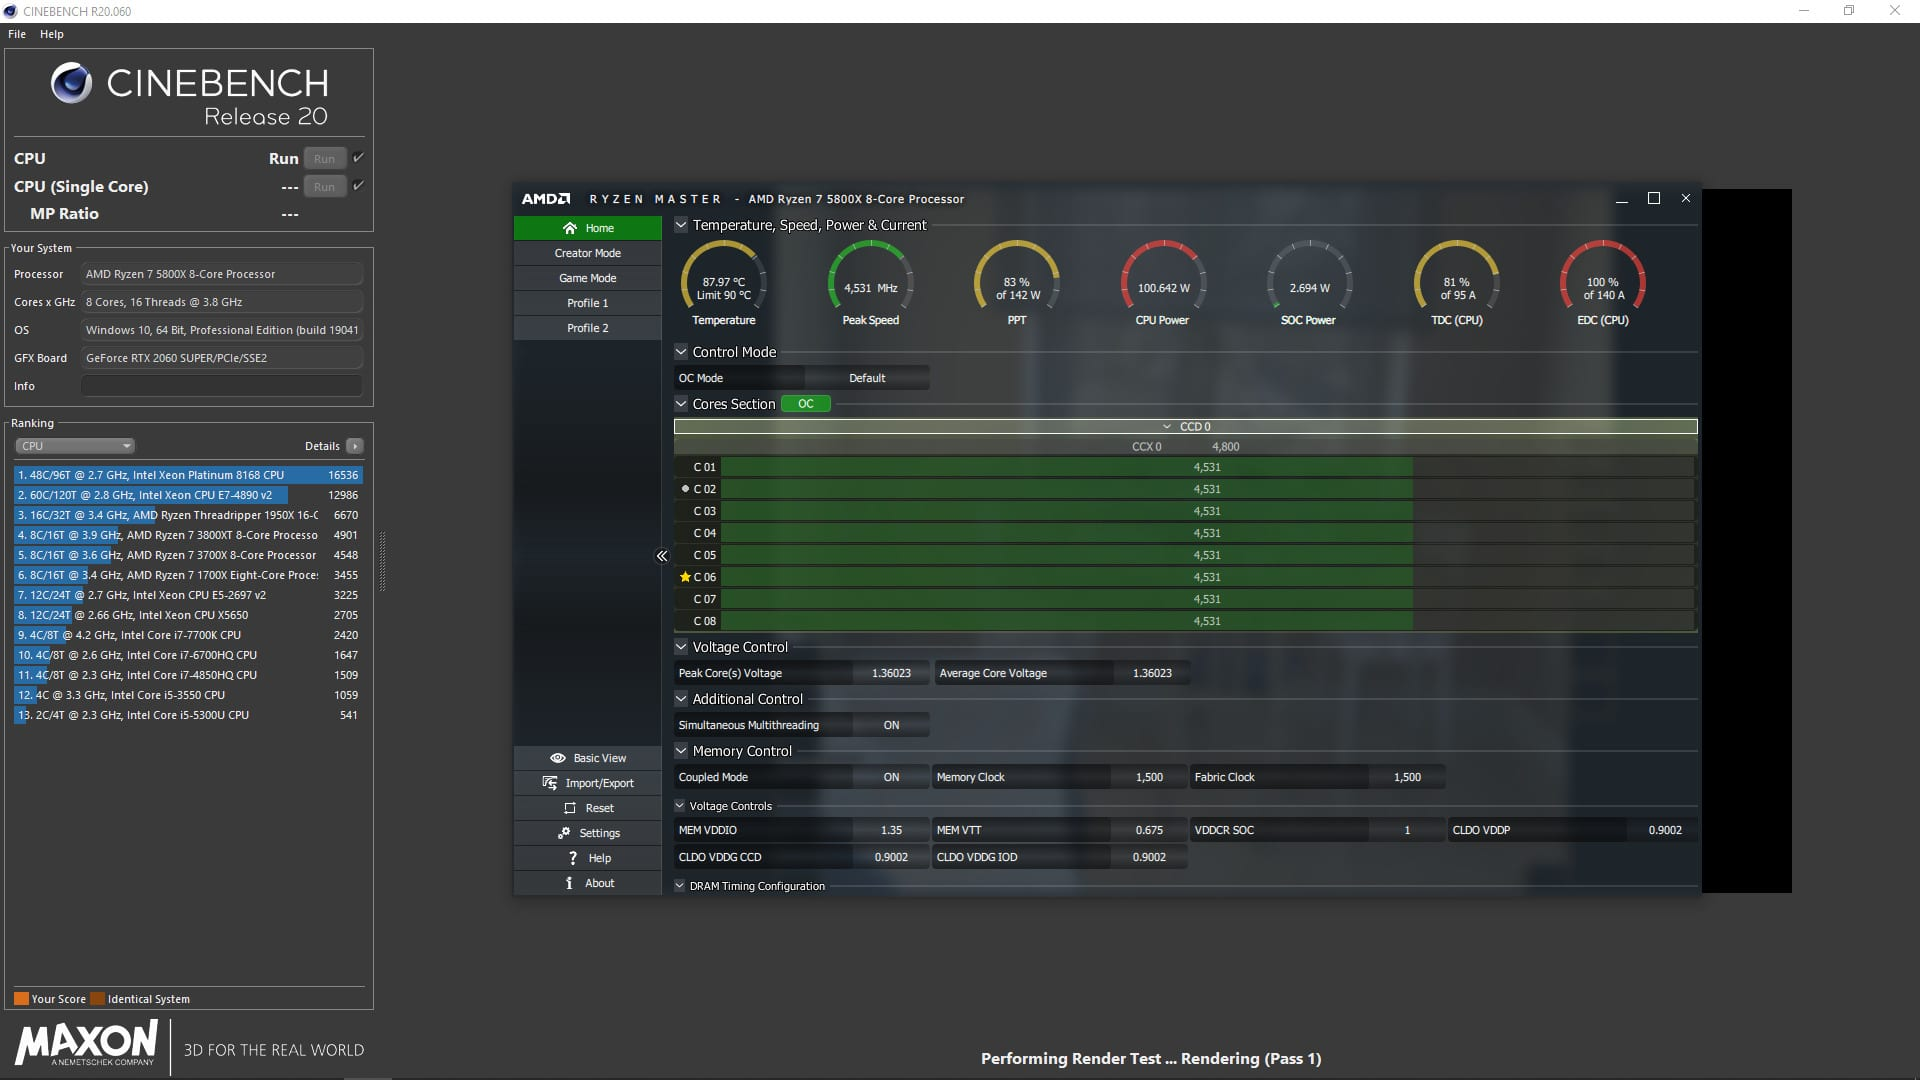 AMD Ryzen 7 5800X All Core workload in Cinebench R20 - It reaches 4.5 GHz on all cores!